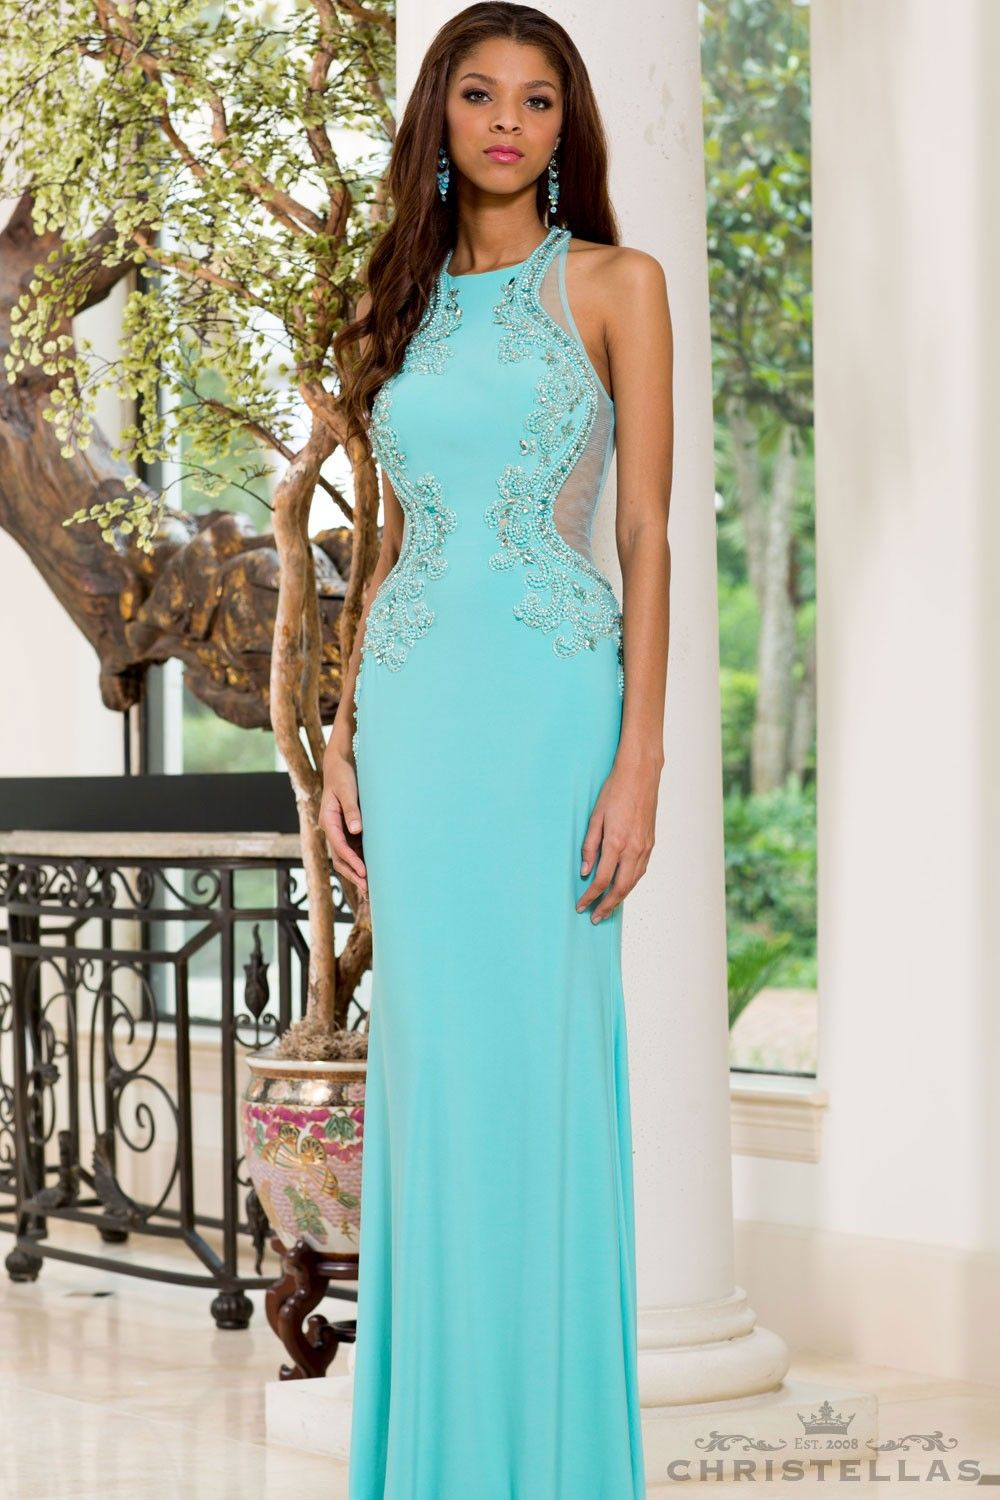 The most stunning Aqua dress we ever did see! Sean Collection 50841 ...